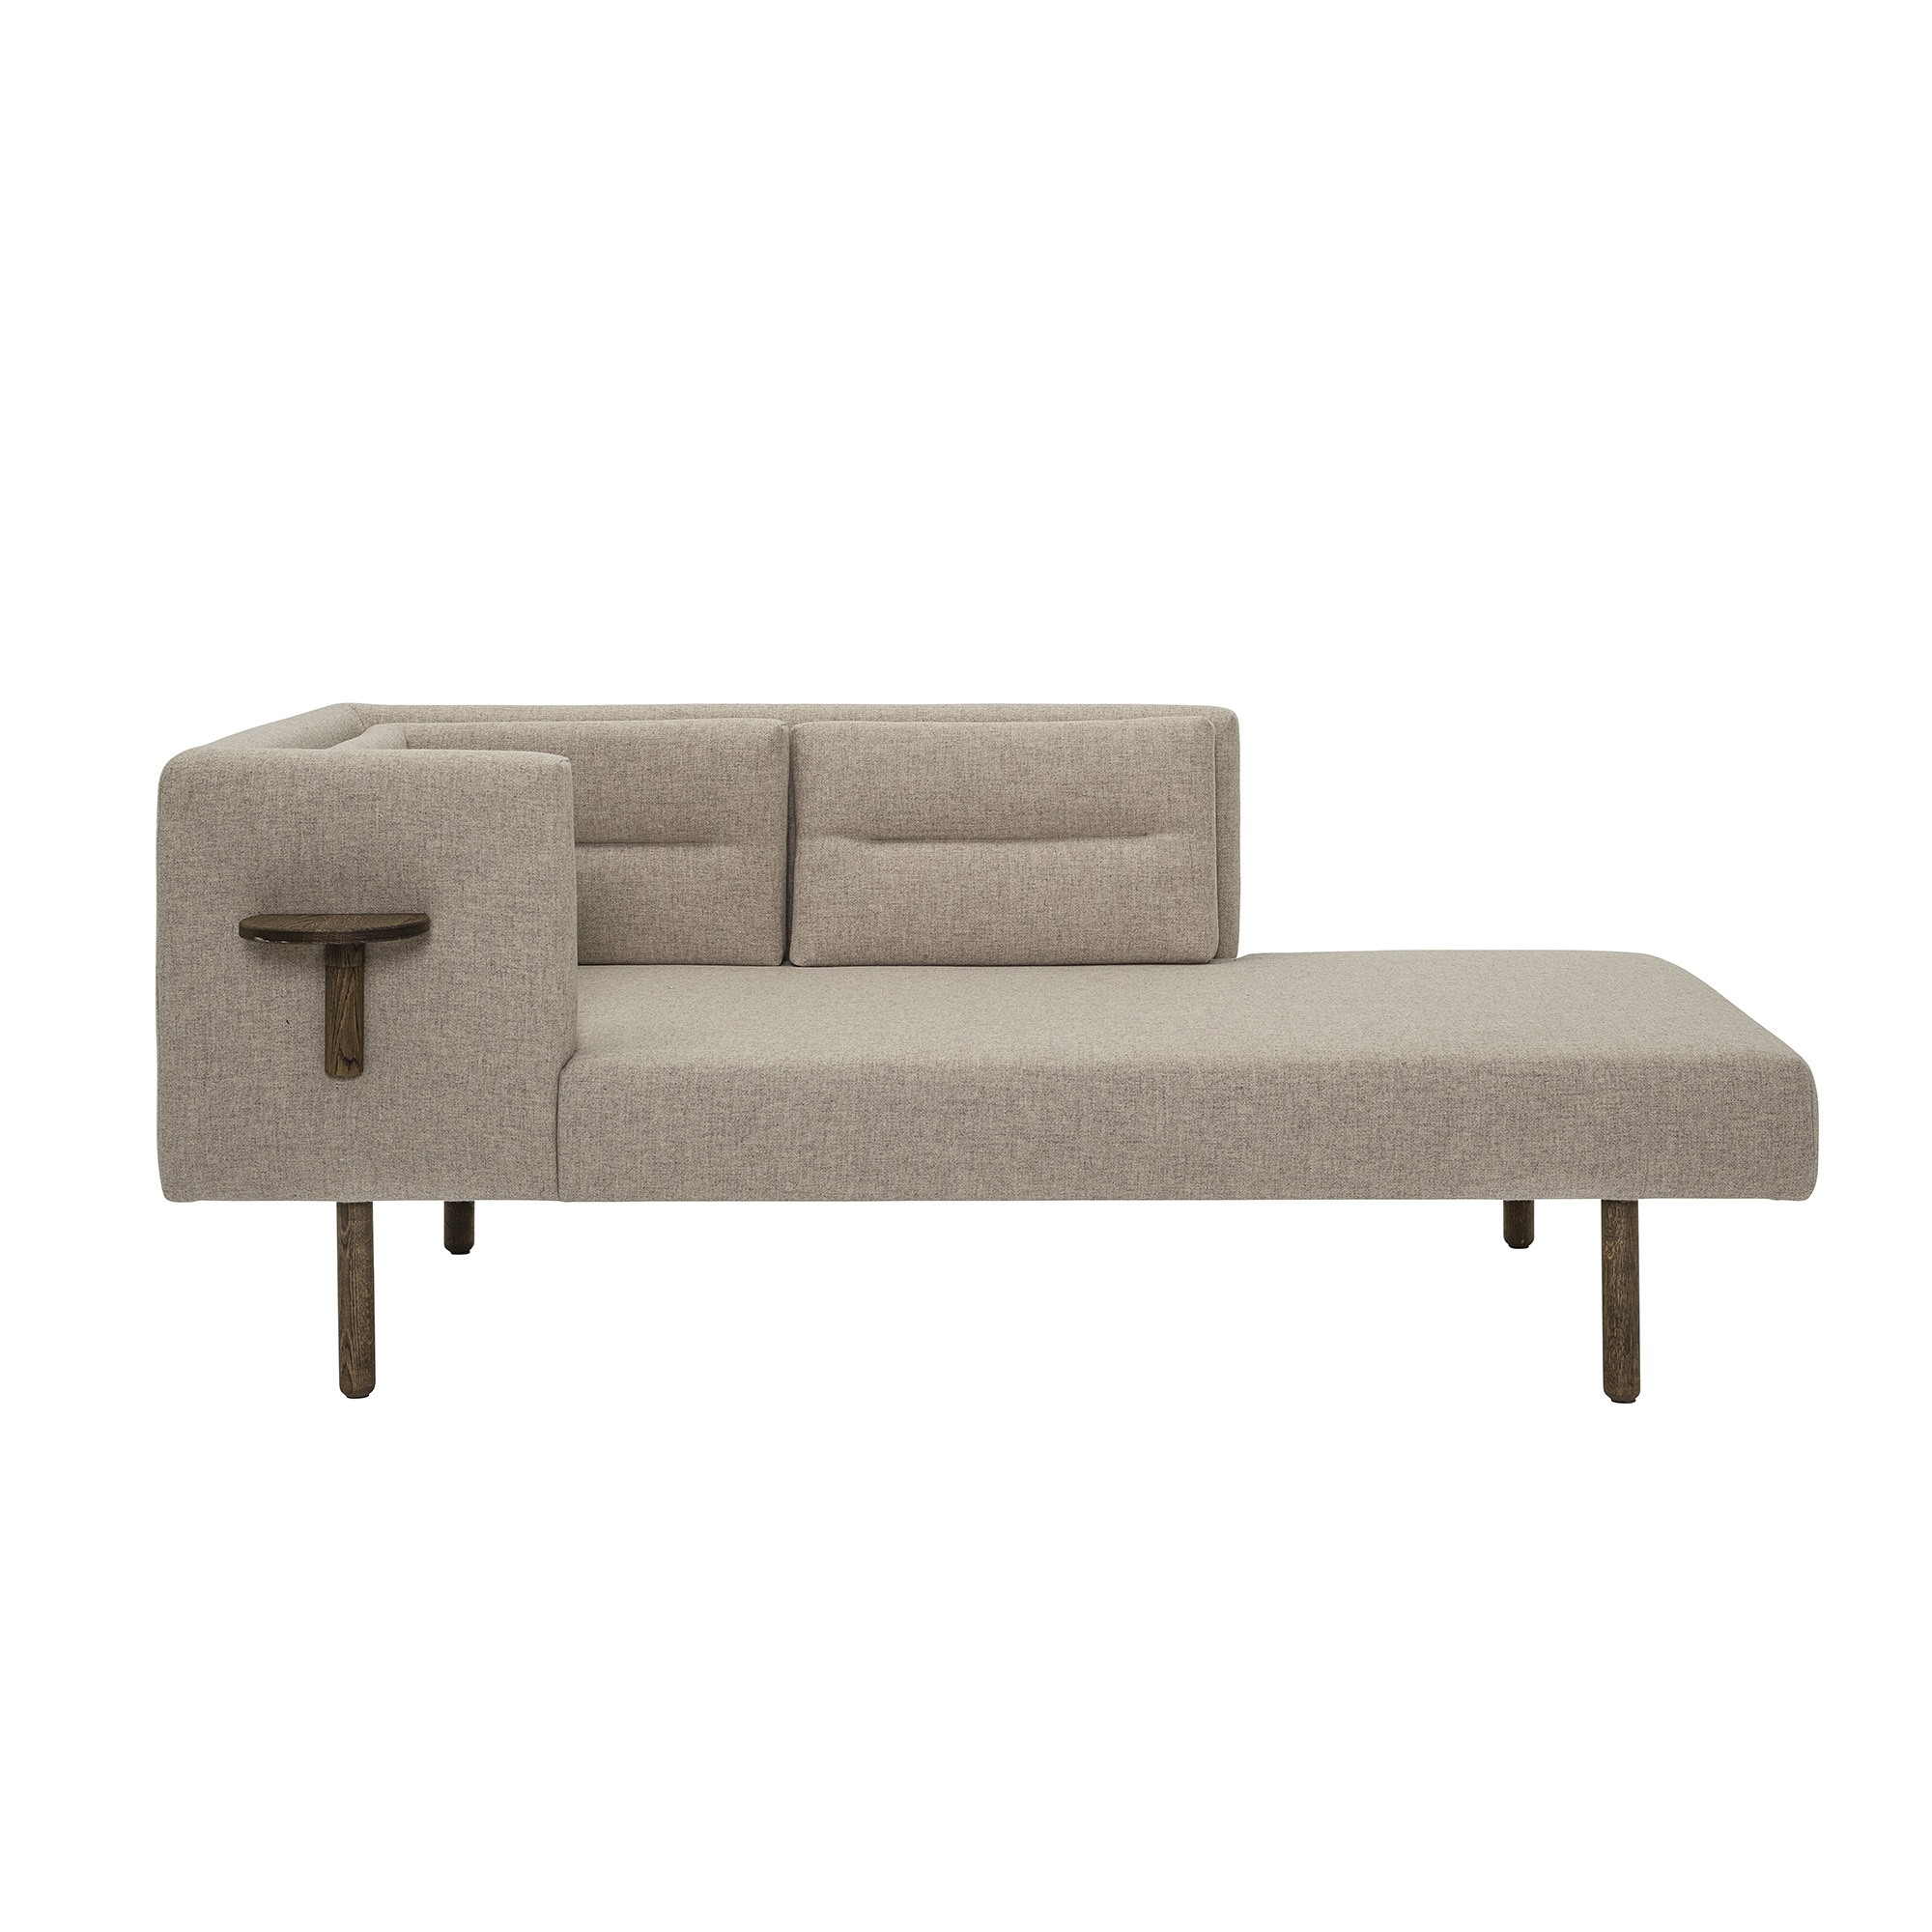 Image of   Bloomingville lean daybed (brun)